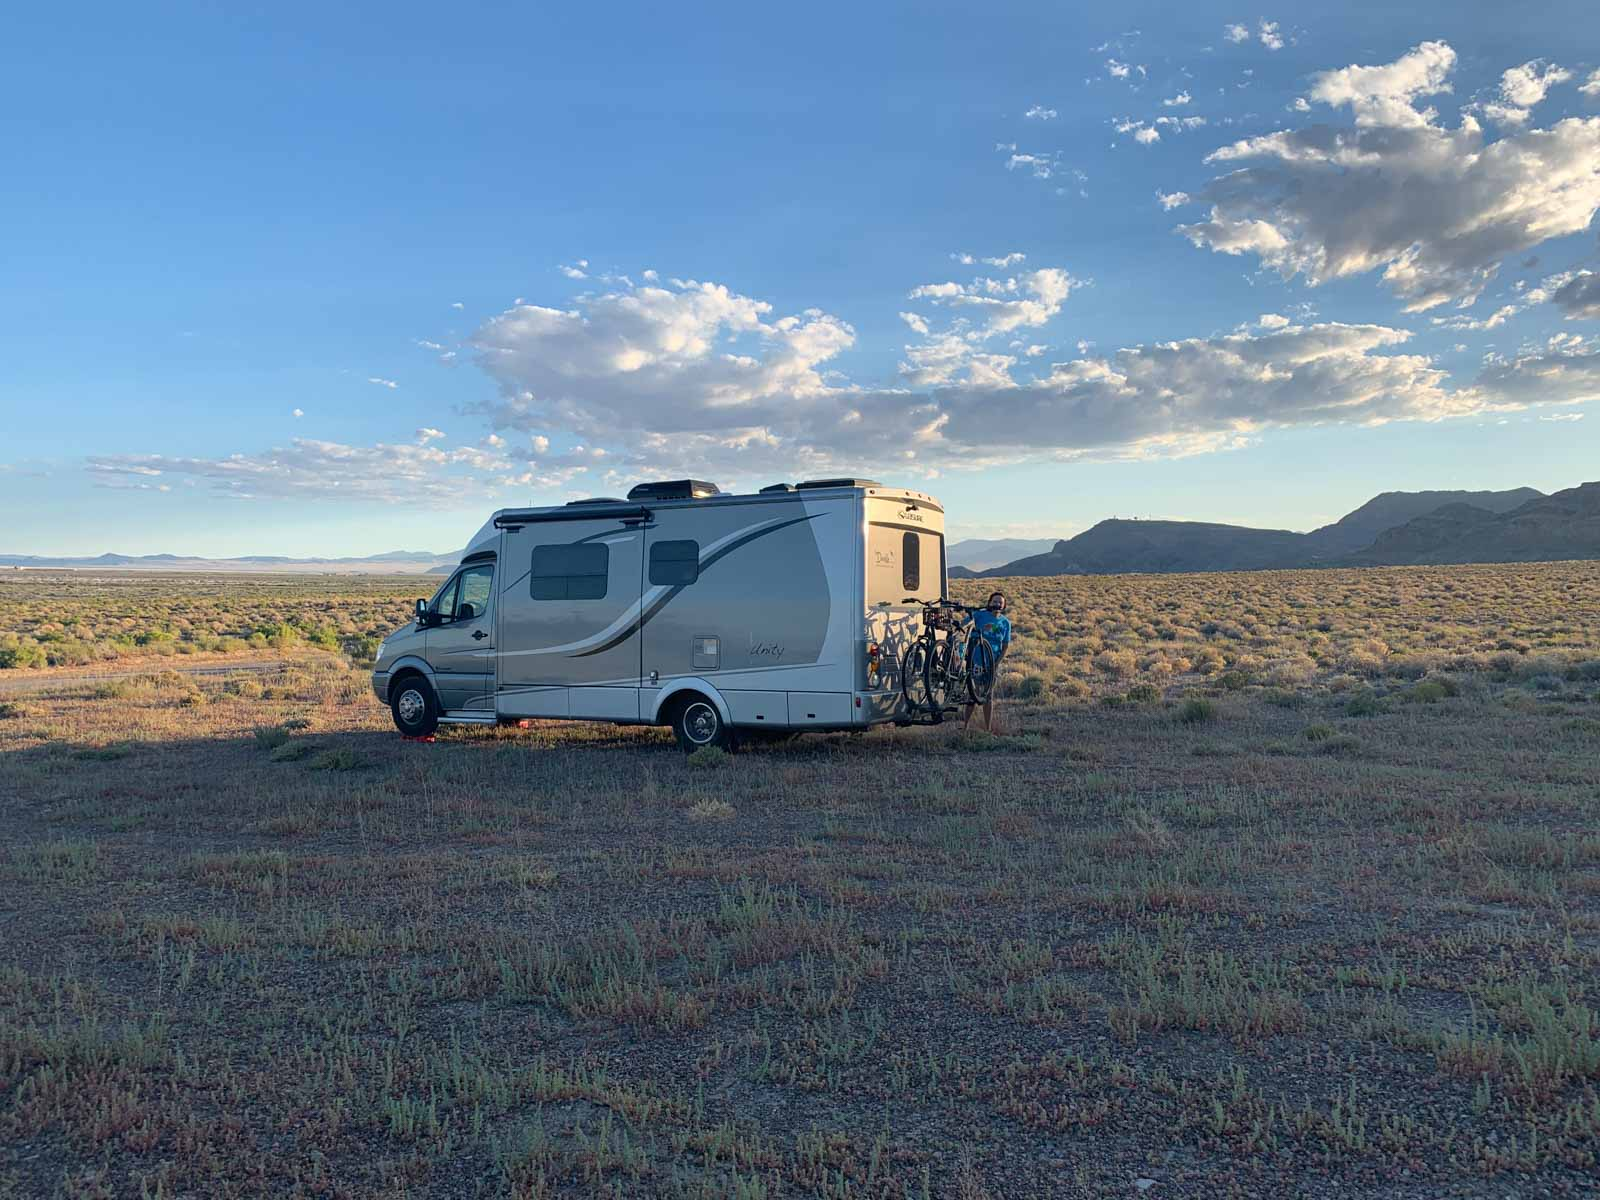 Home for the night at the Salt Flats BLM land